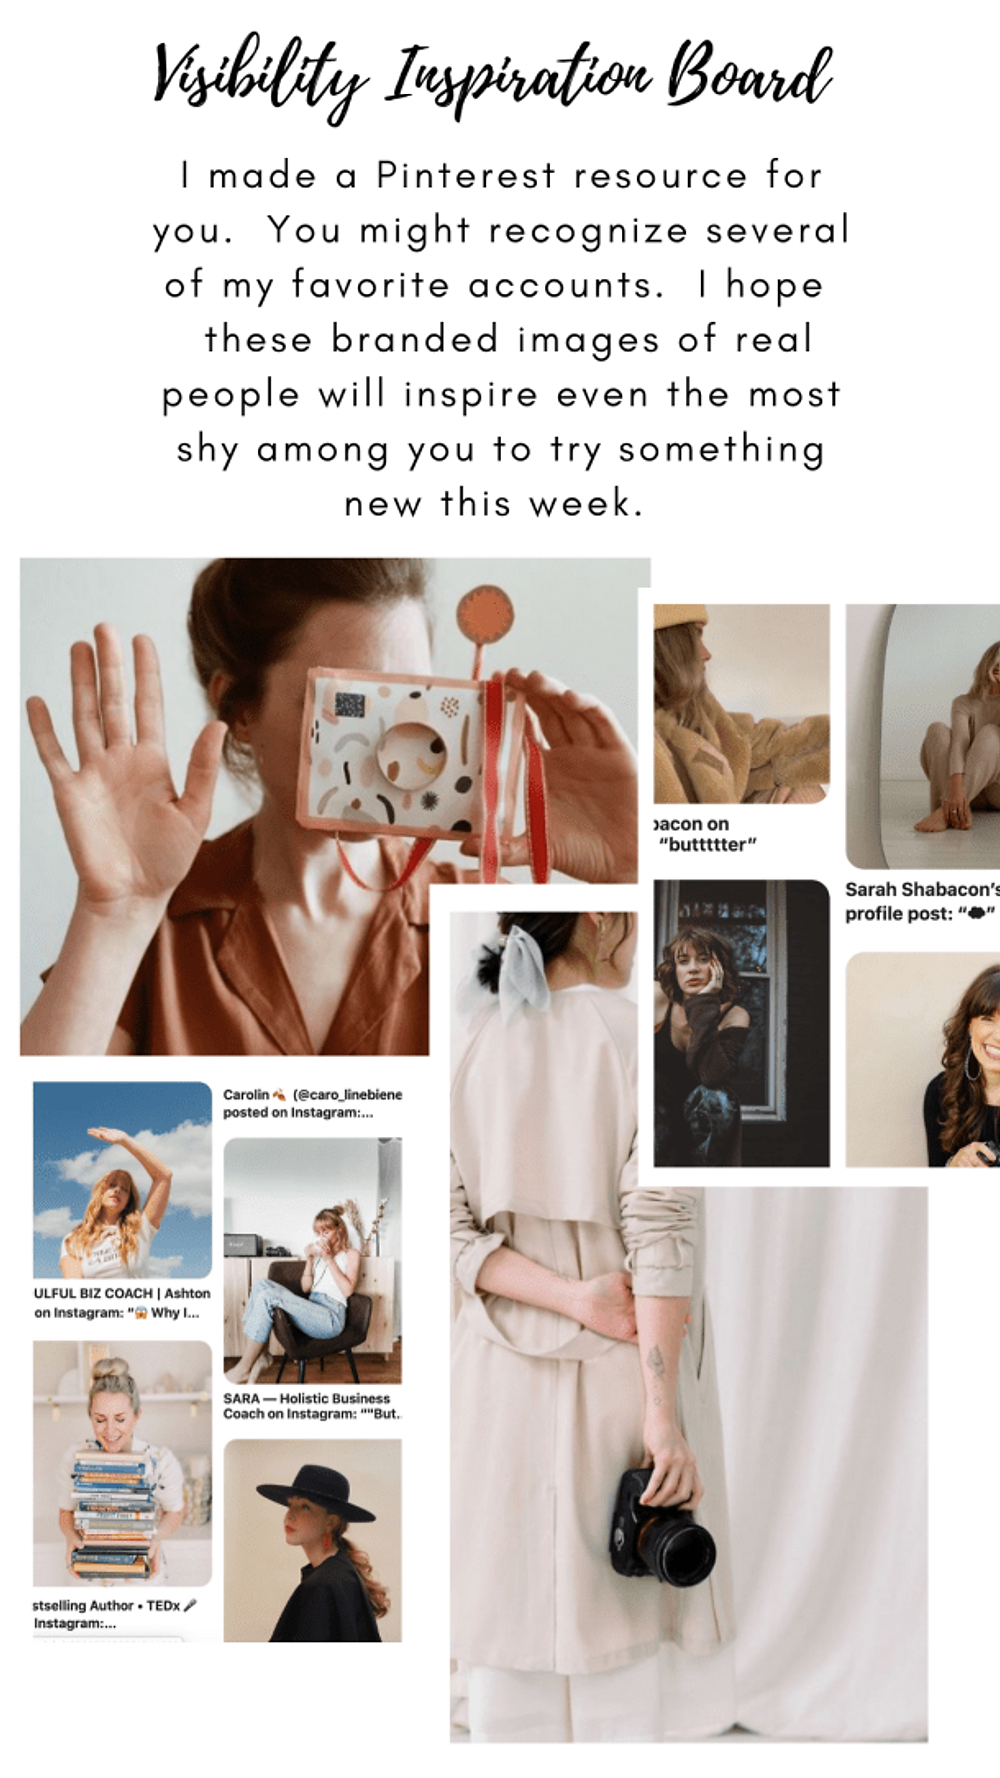 Brand Visibility Mood Board on Pinterest.  Inspiration images for your photos.